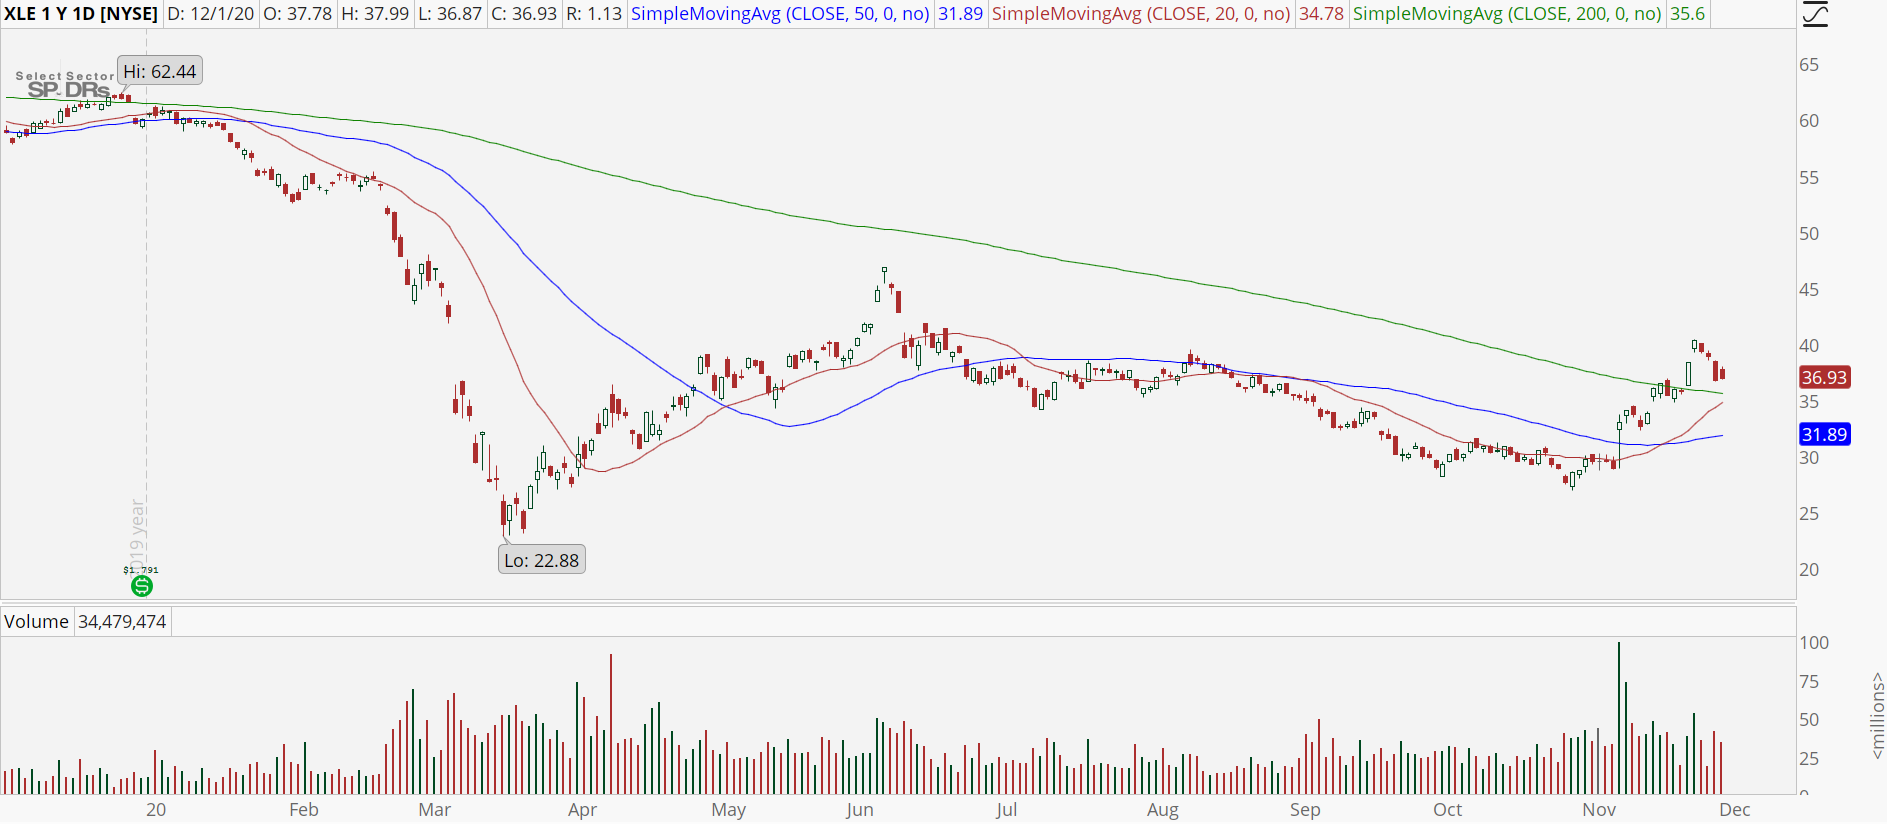 Energy Sector (XLE) with bull retracement pattern